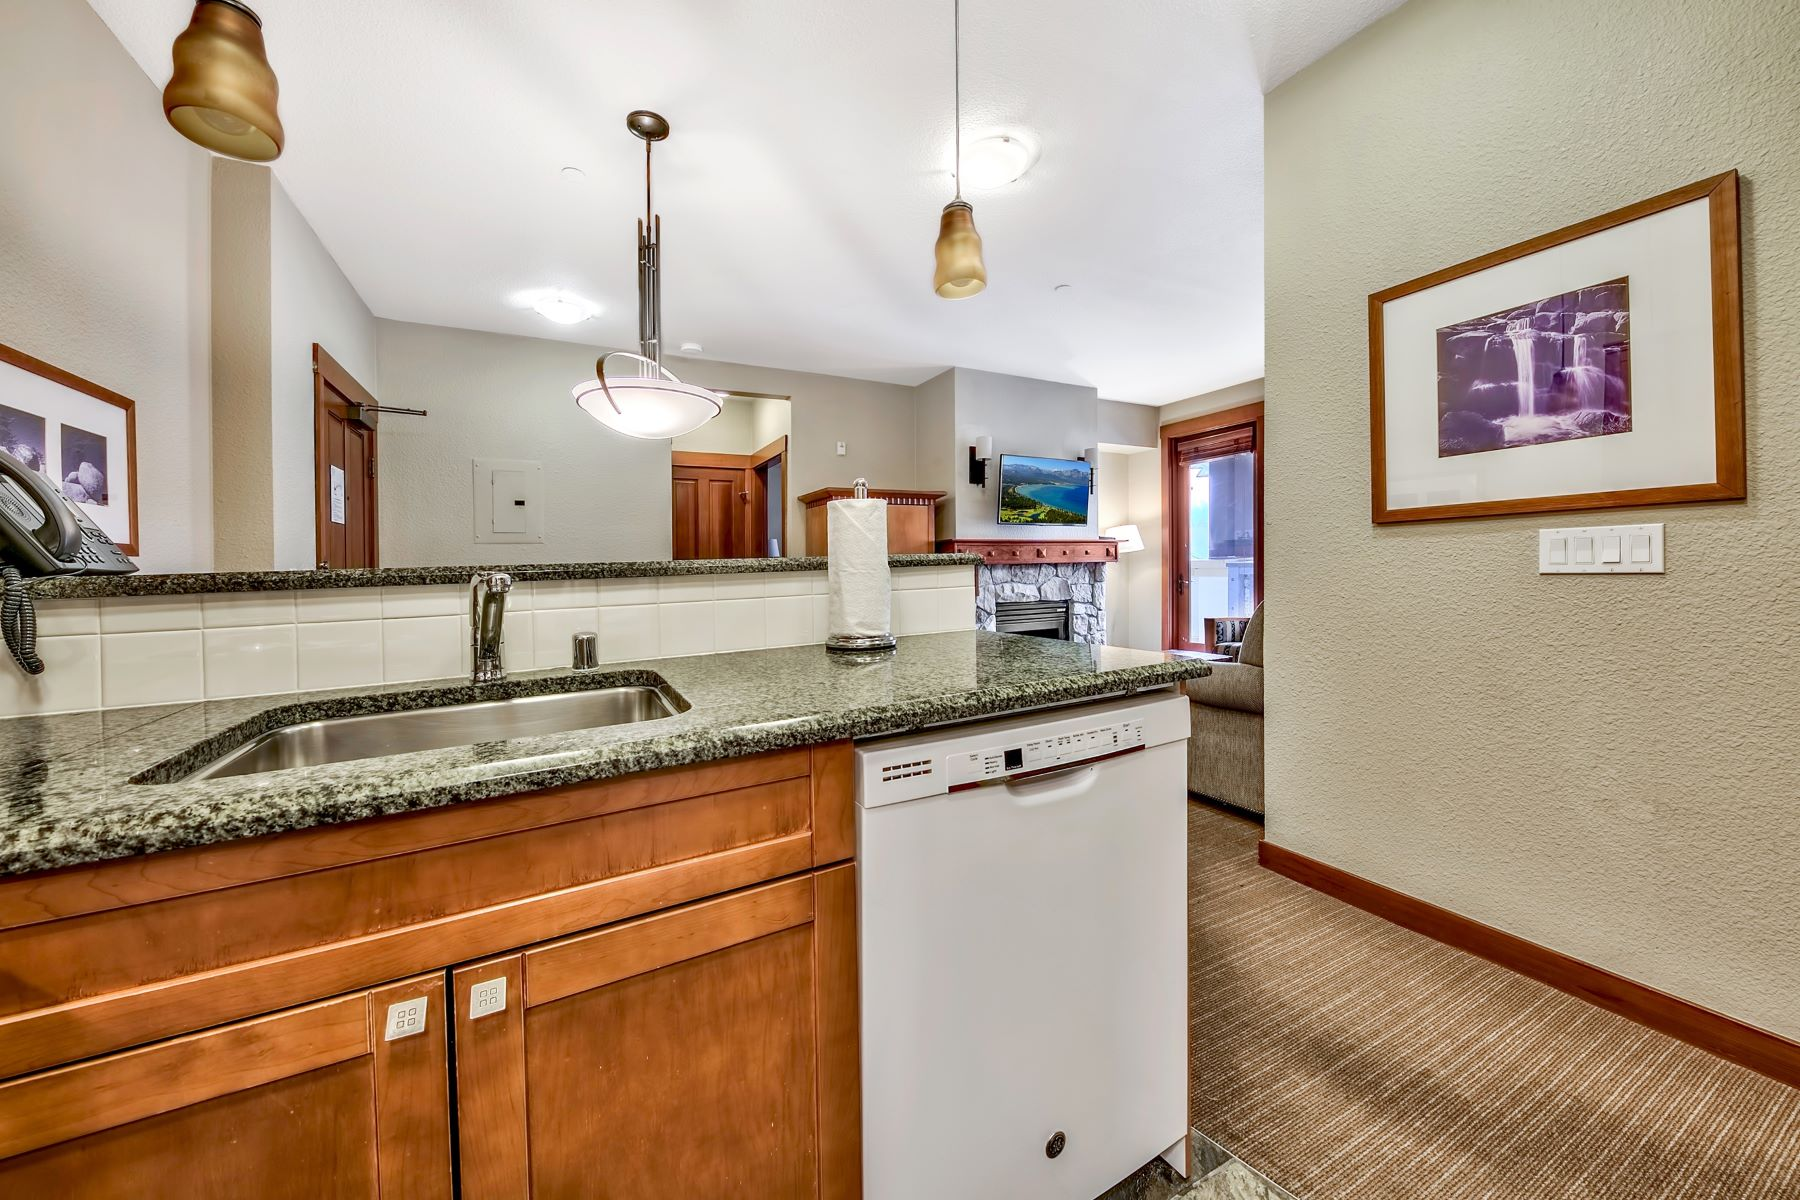 Additional photo for property listing at 1880 Village South Road Unit# 3-233 City Olympic Valley 1880 Village South Road #3-233 Olympic Valley, California 96146 United States